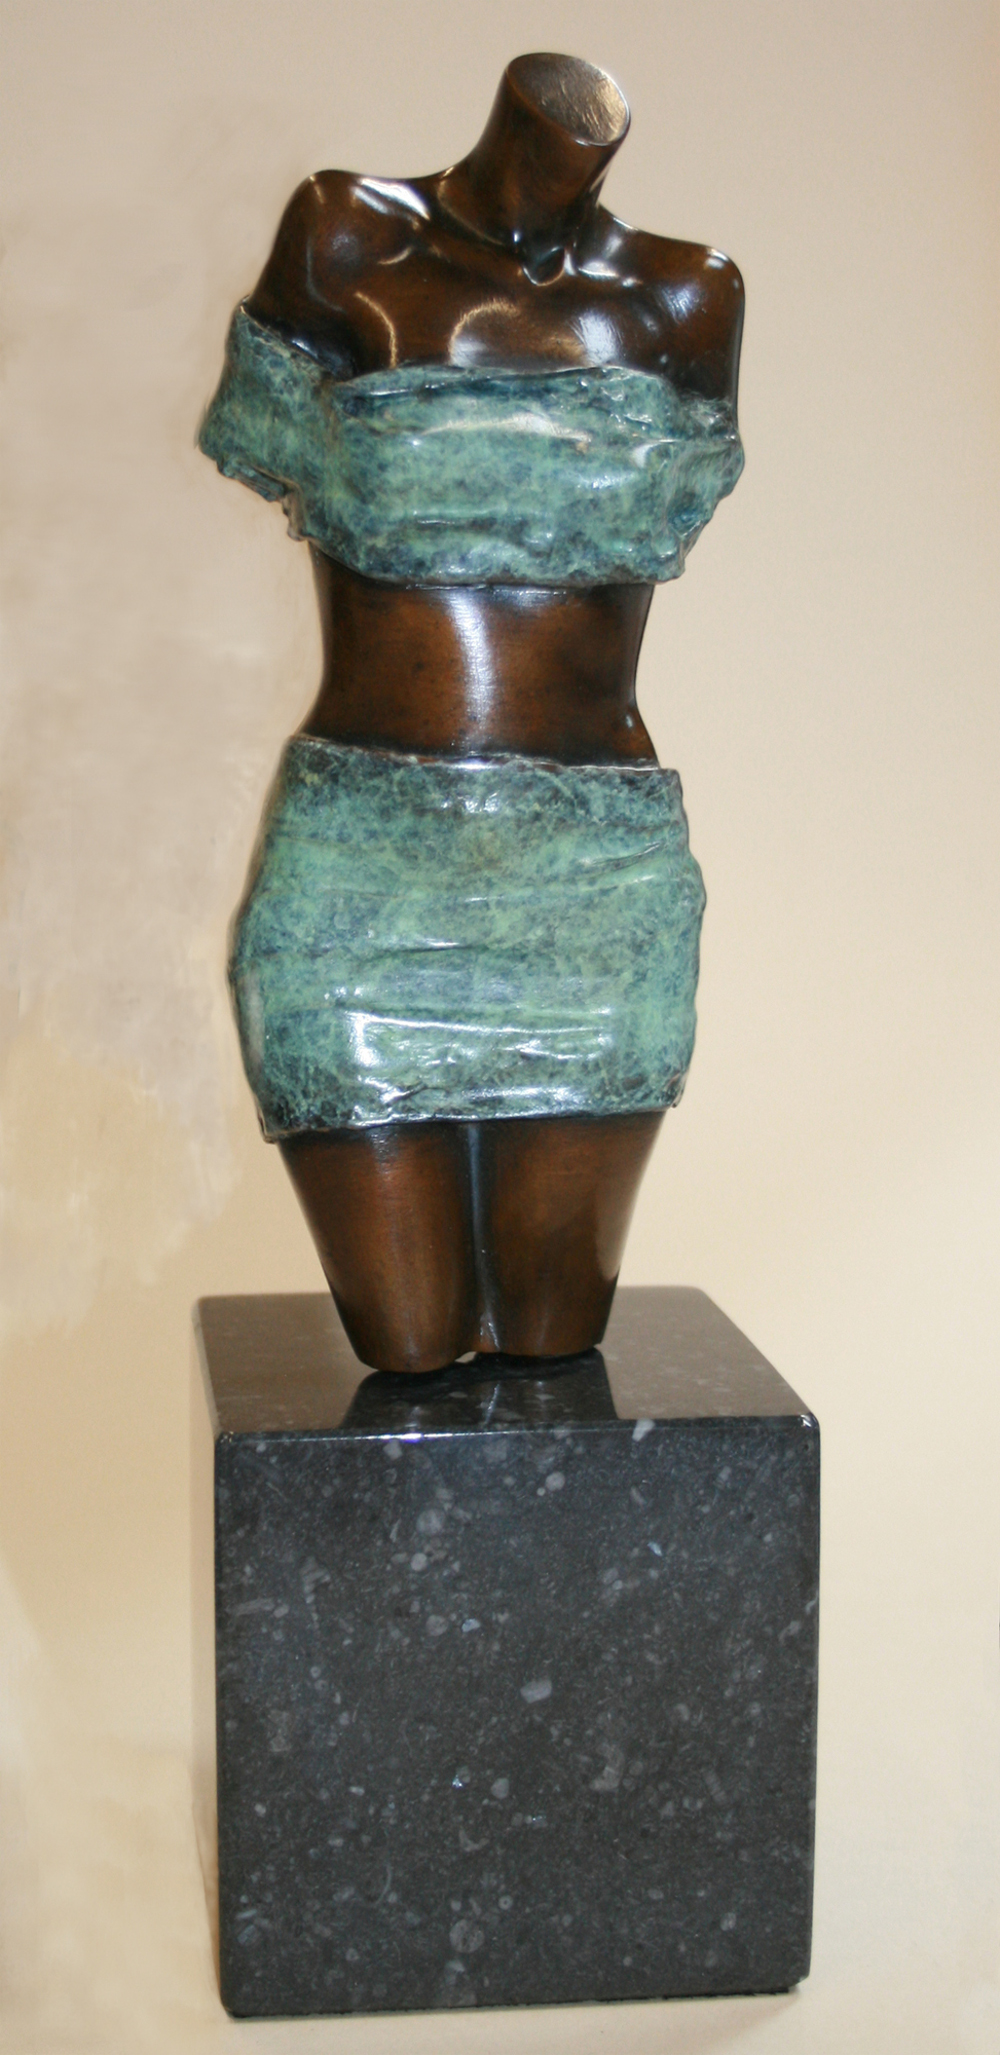 Aphrodite front-view